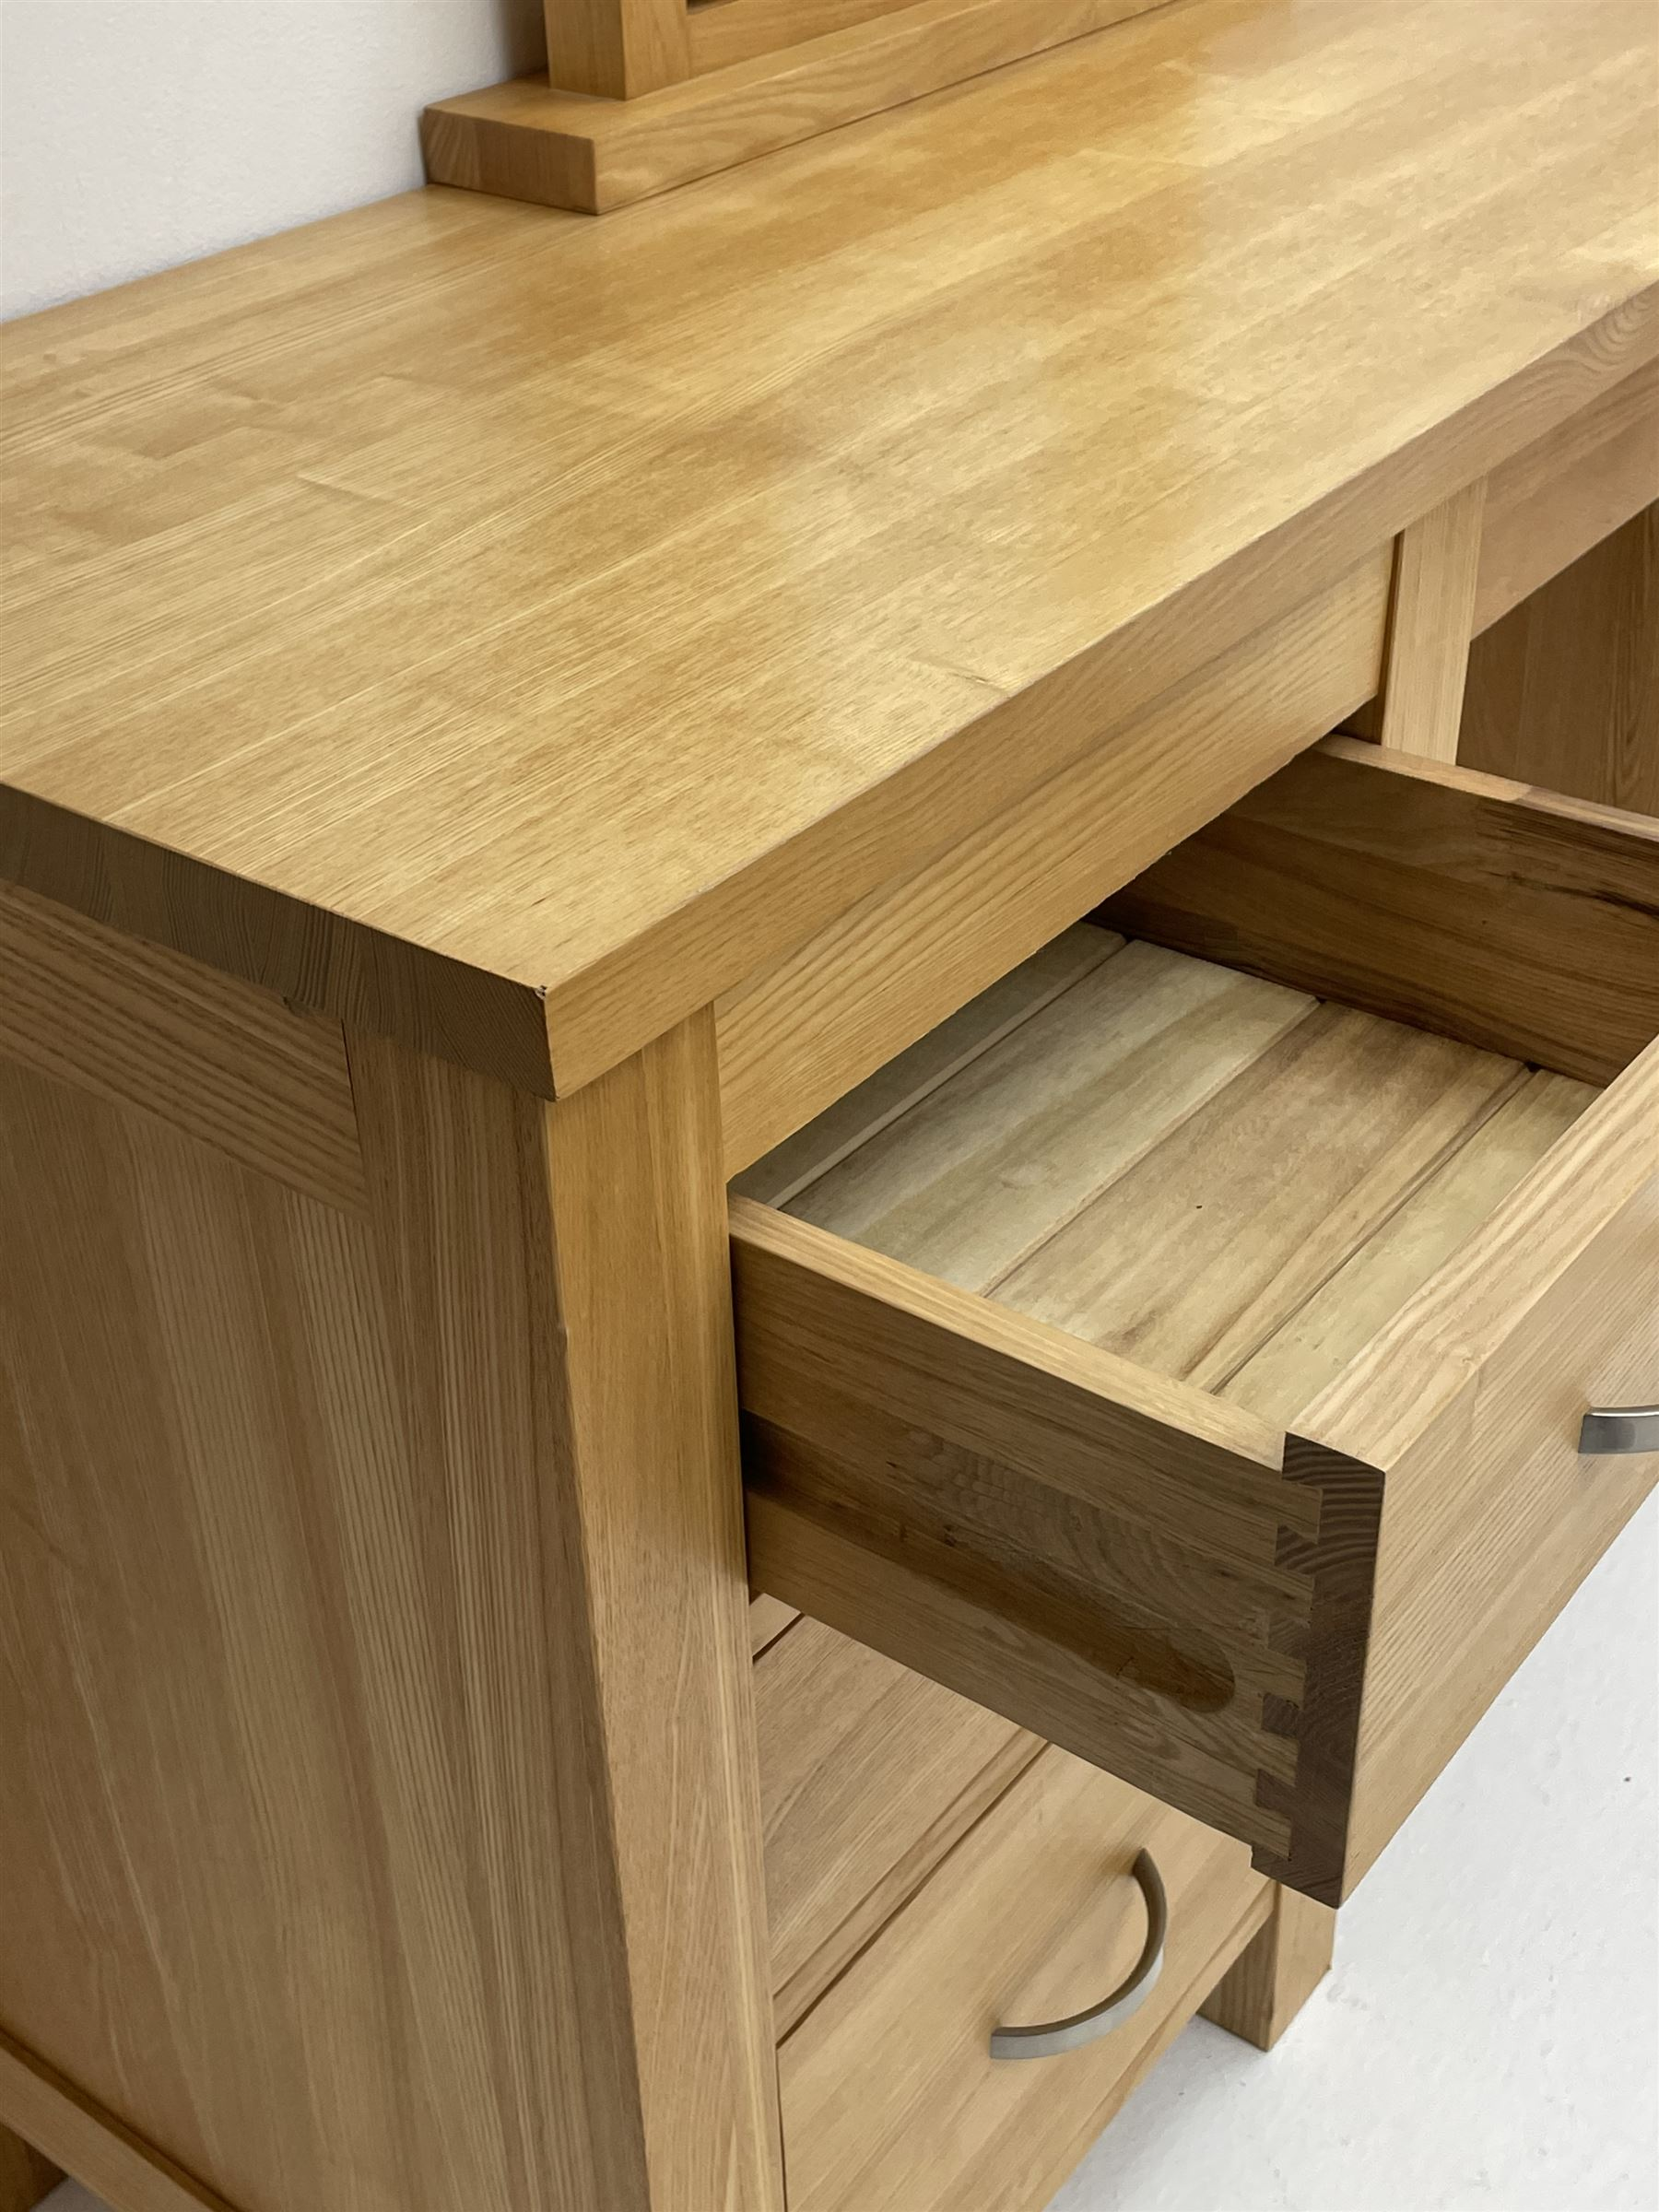 Light oak dressing table with mirror - Image 3 of 3